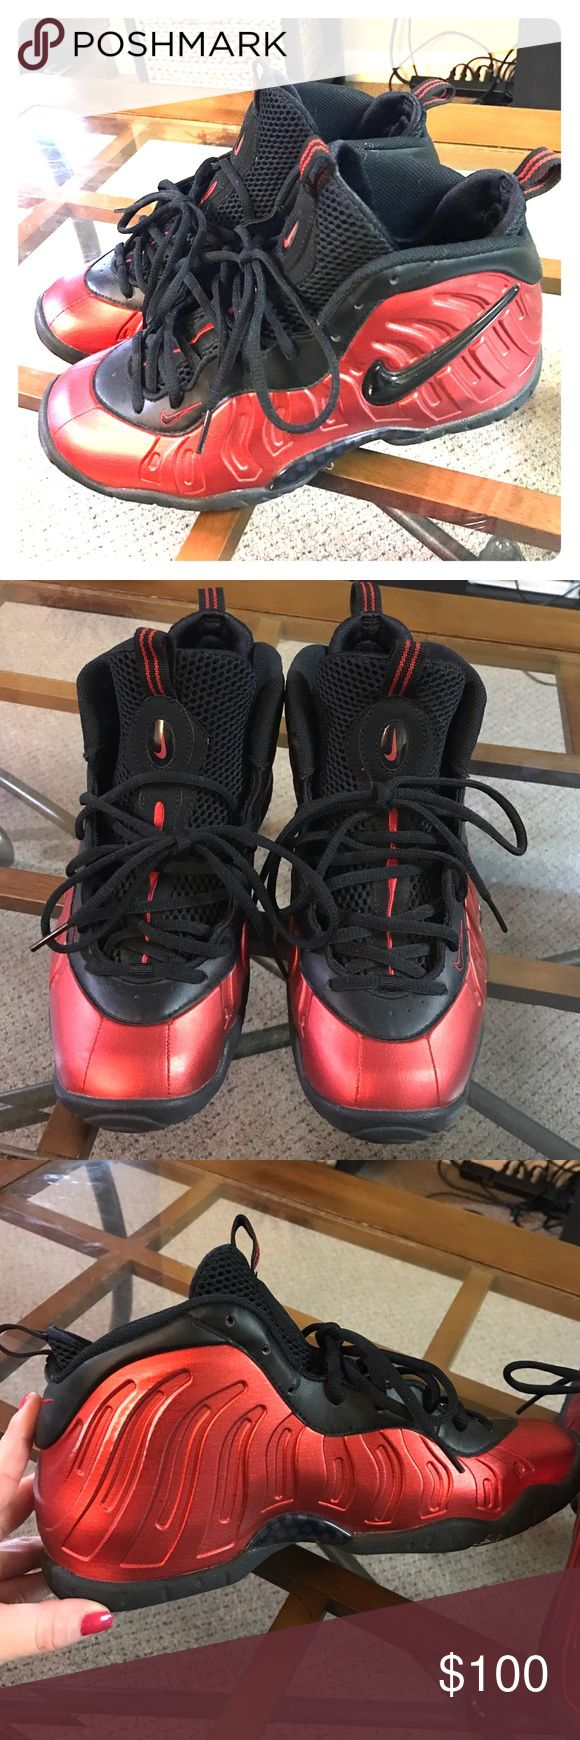 University Red Foams Size 6.5 youth Worn a few times excellent condition, pet free smoke free home Nike Shoes Sneakers